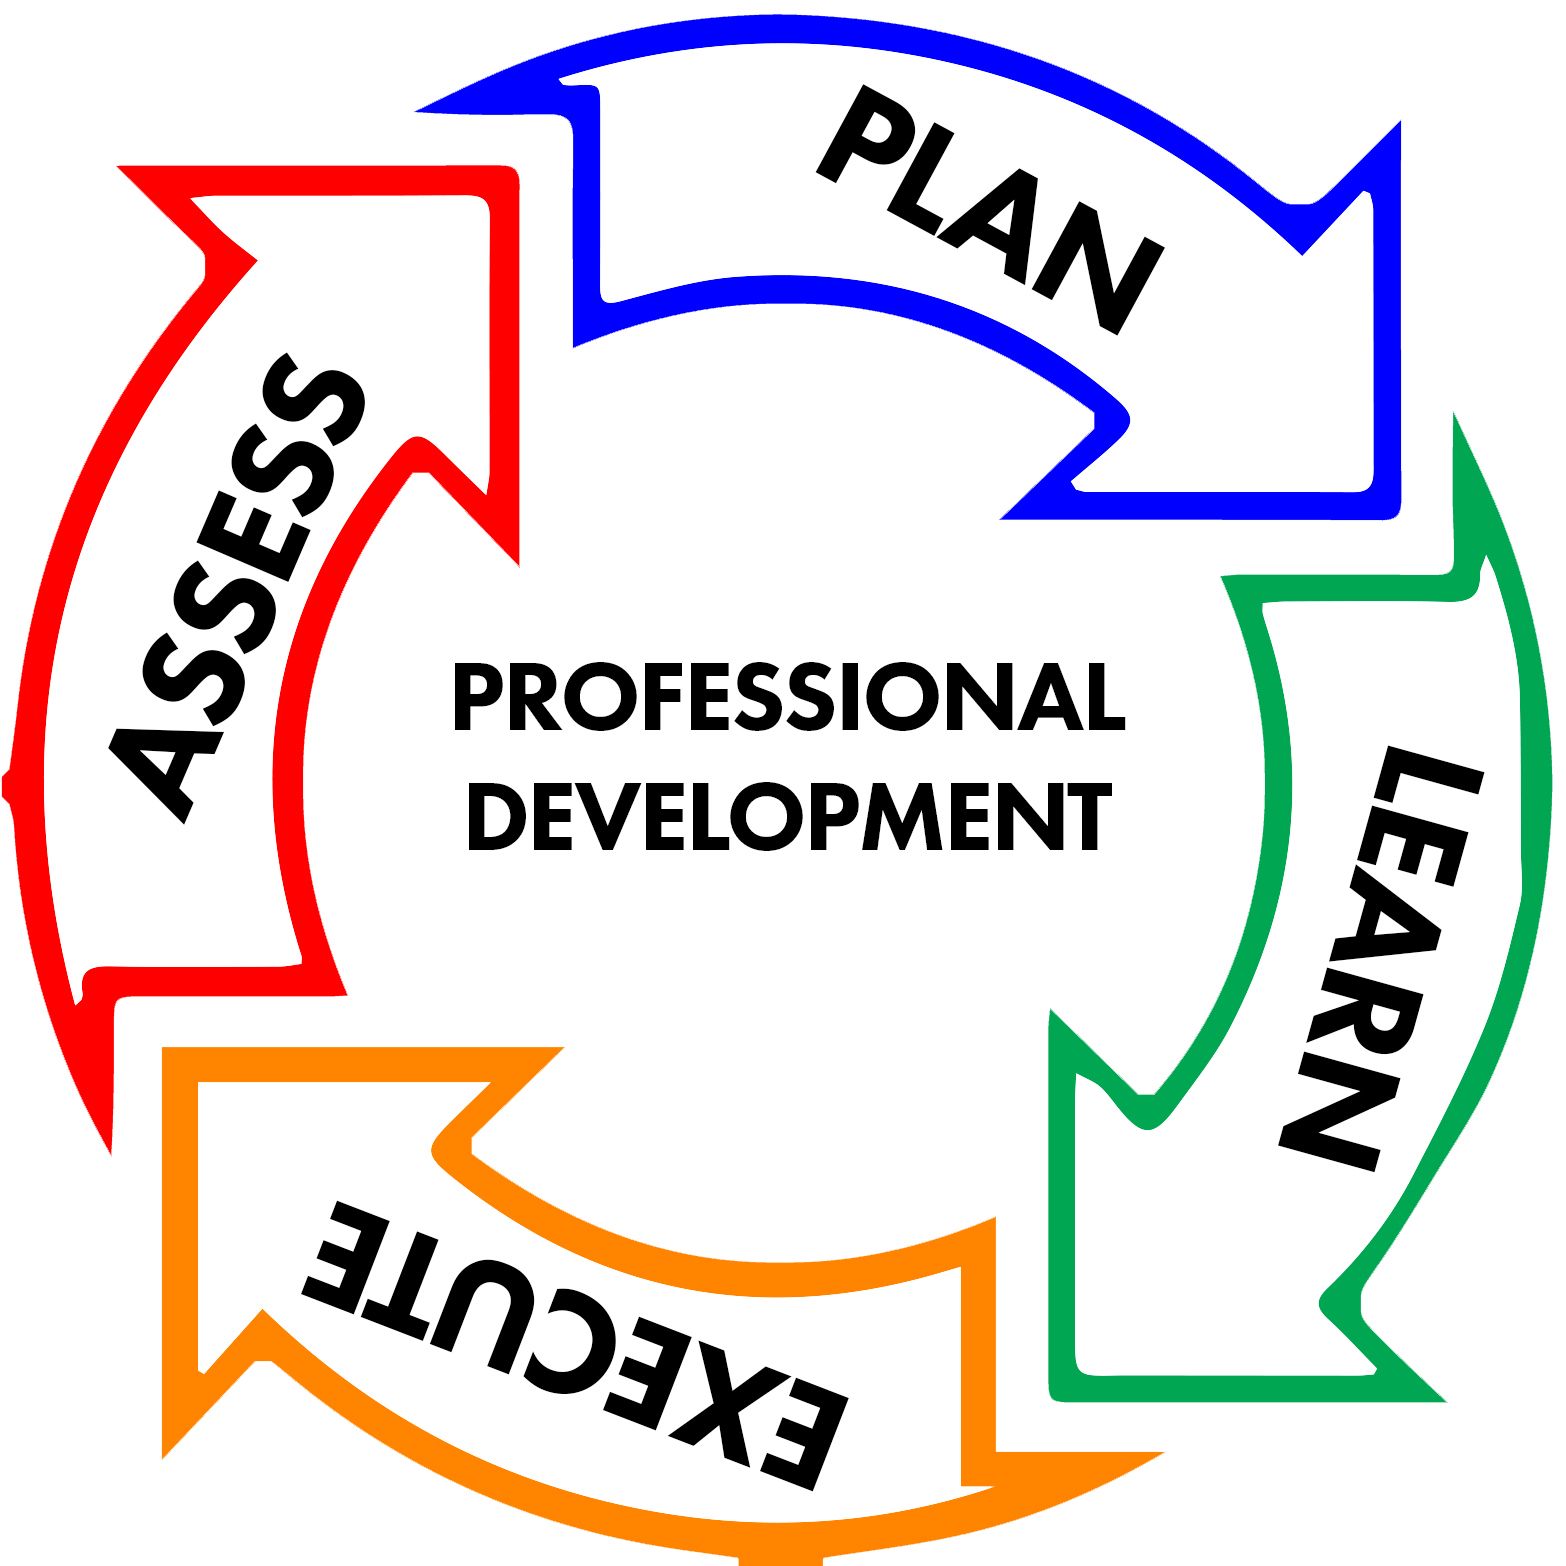 Circle of arrows stating Plan, Learn, Execute, Assess